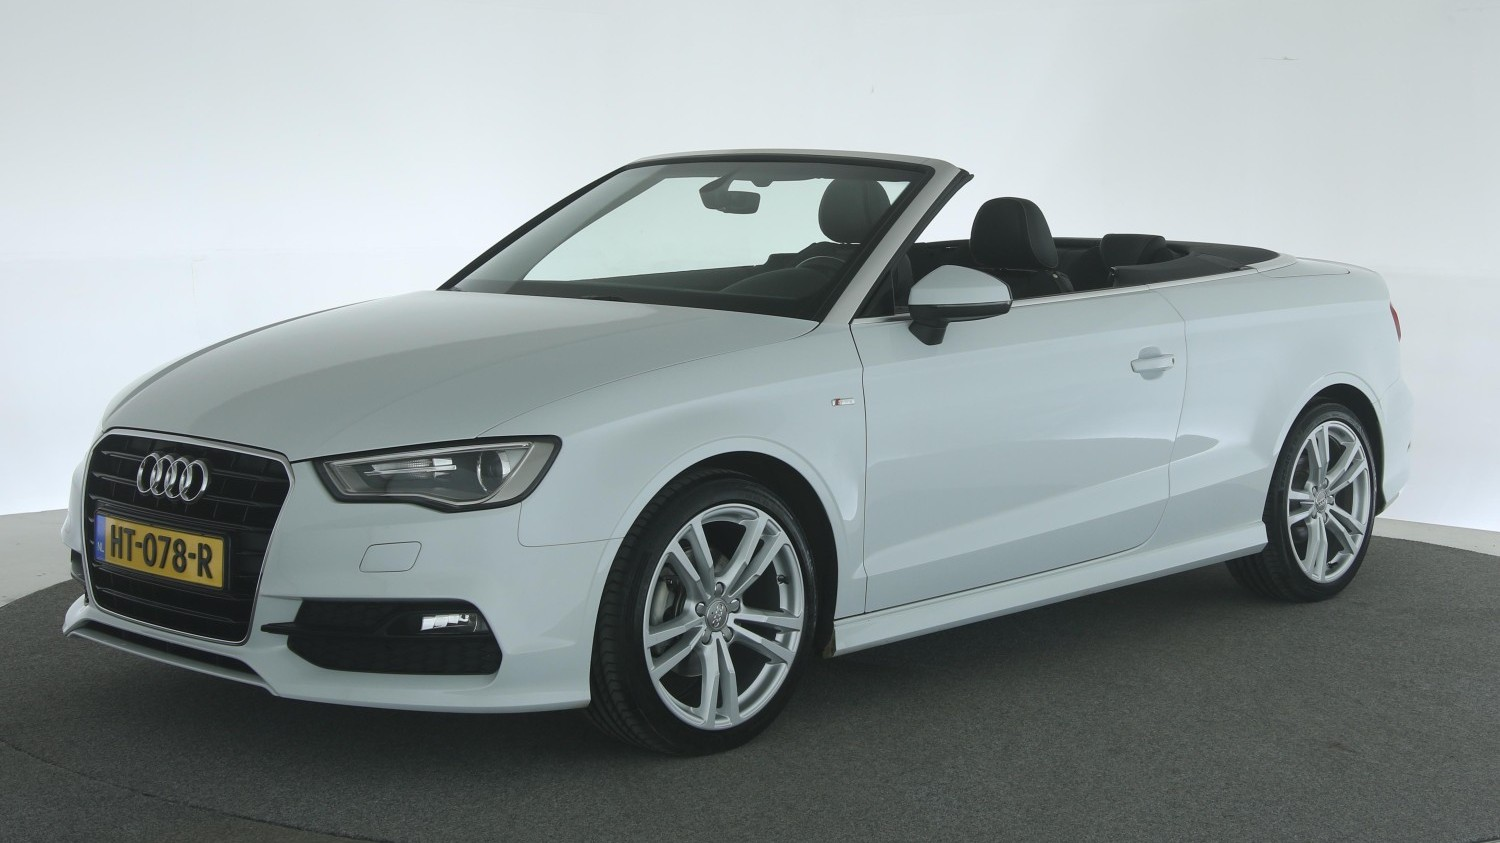 Audi A3 Cabriolet 2016 HT-078-R 1